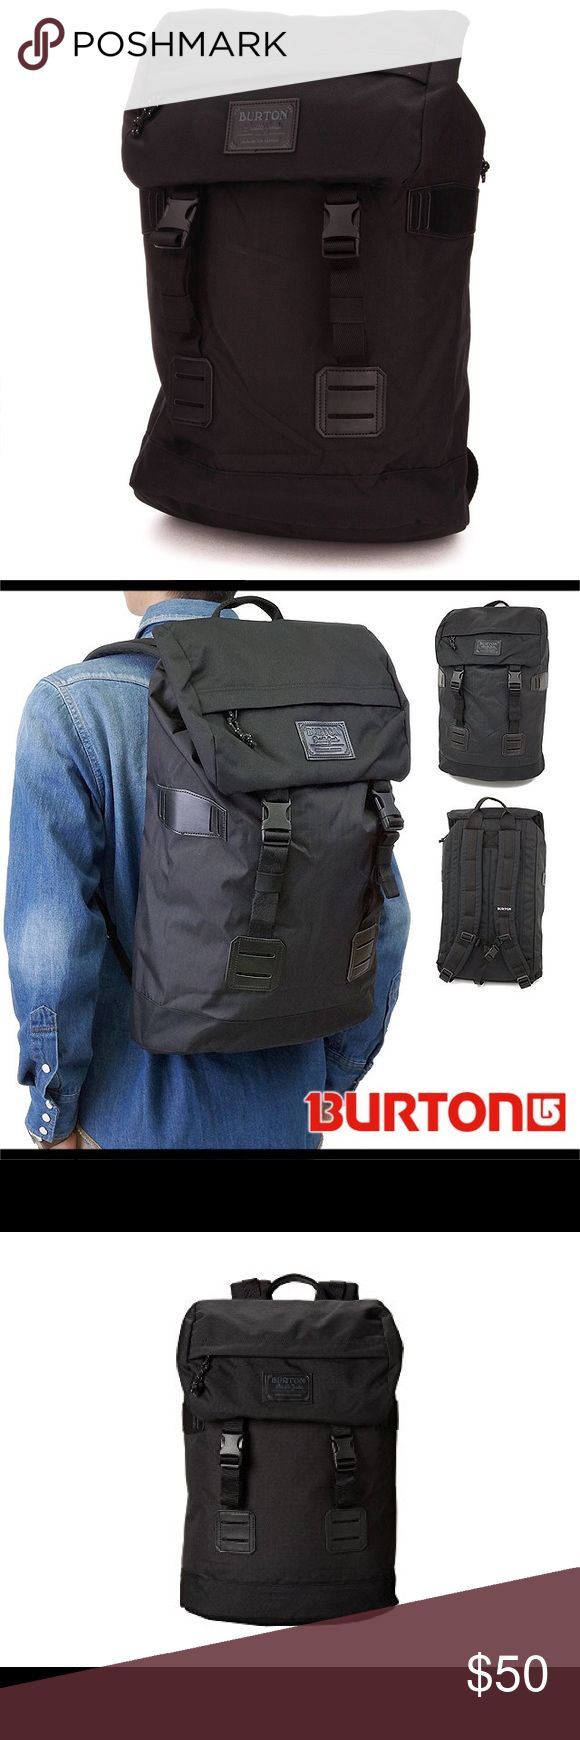 Burton Tinder Backpack 25L Burton backpack // purchased from urban outfitters // Burton Tinder Pack // EUC with no flaws // Accessible padded laptop compartment //  Easy drawstring closure // Cush Ergonomic Shoulder Harness // Adjustable Sternum Strap // External and Internal Accessible Padded Laptop Compartment [16.5in x 10in x 1.5in] [42cm x 26cm x 4cm] // Rucksack Style Main Entry with Drawstring Closure // Top Accessory Pocket // Zippered Internal Mesh Pocket Burton Bags Backpacks